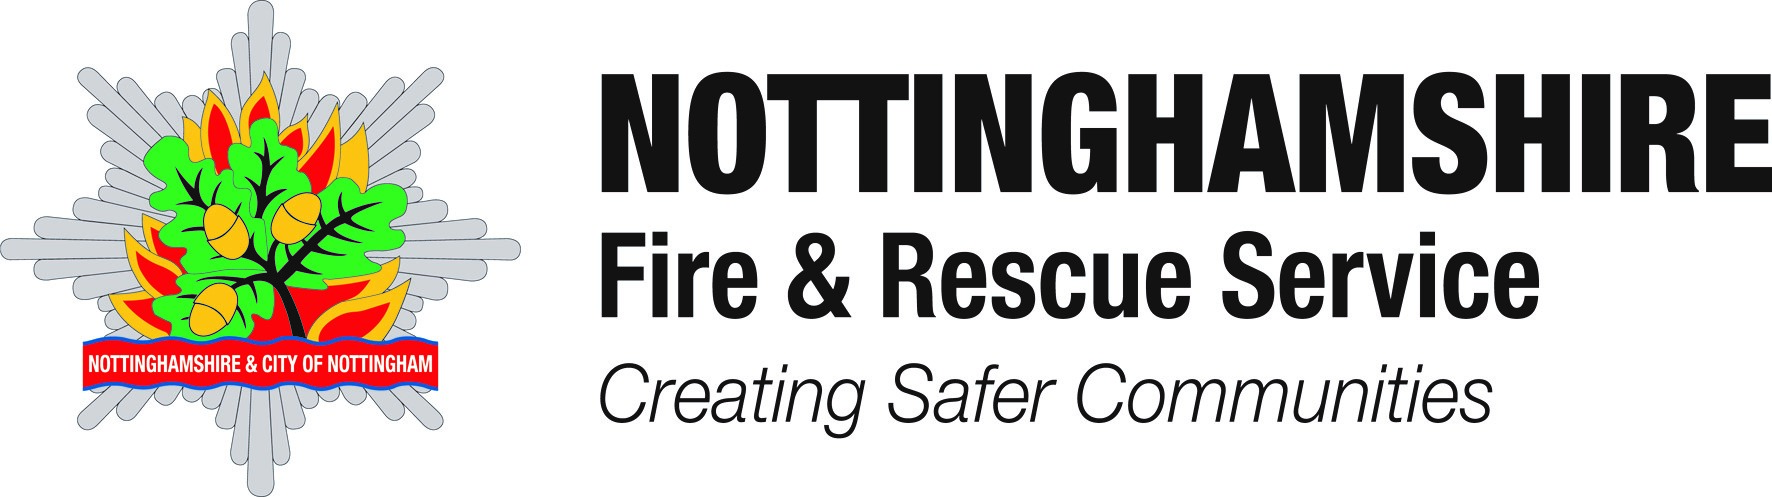 Notts Fire and Rescue logo